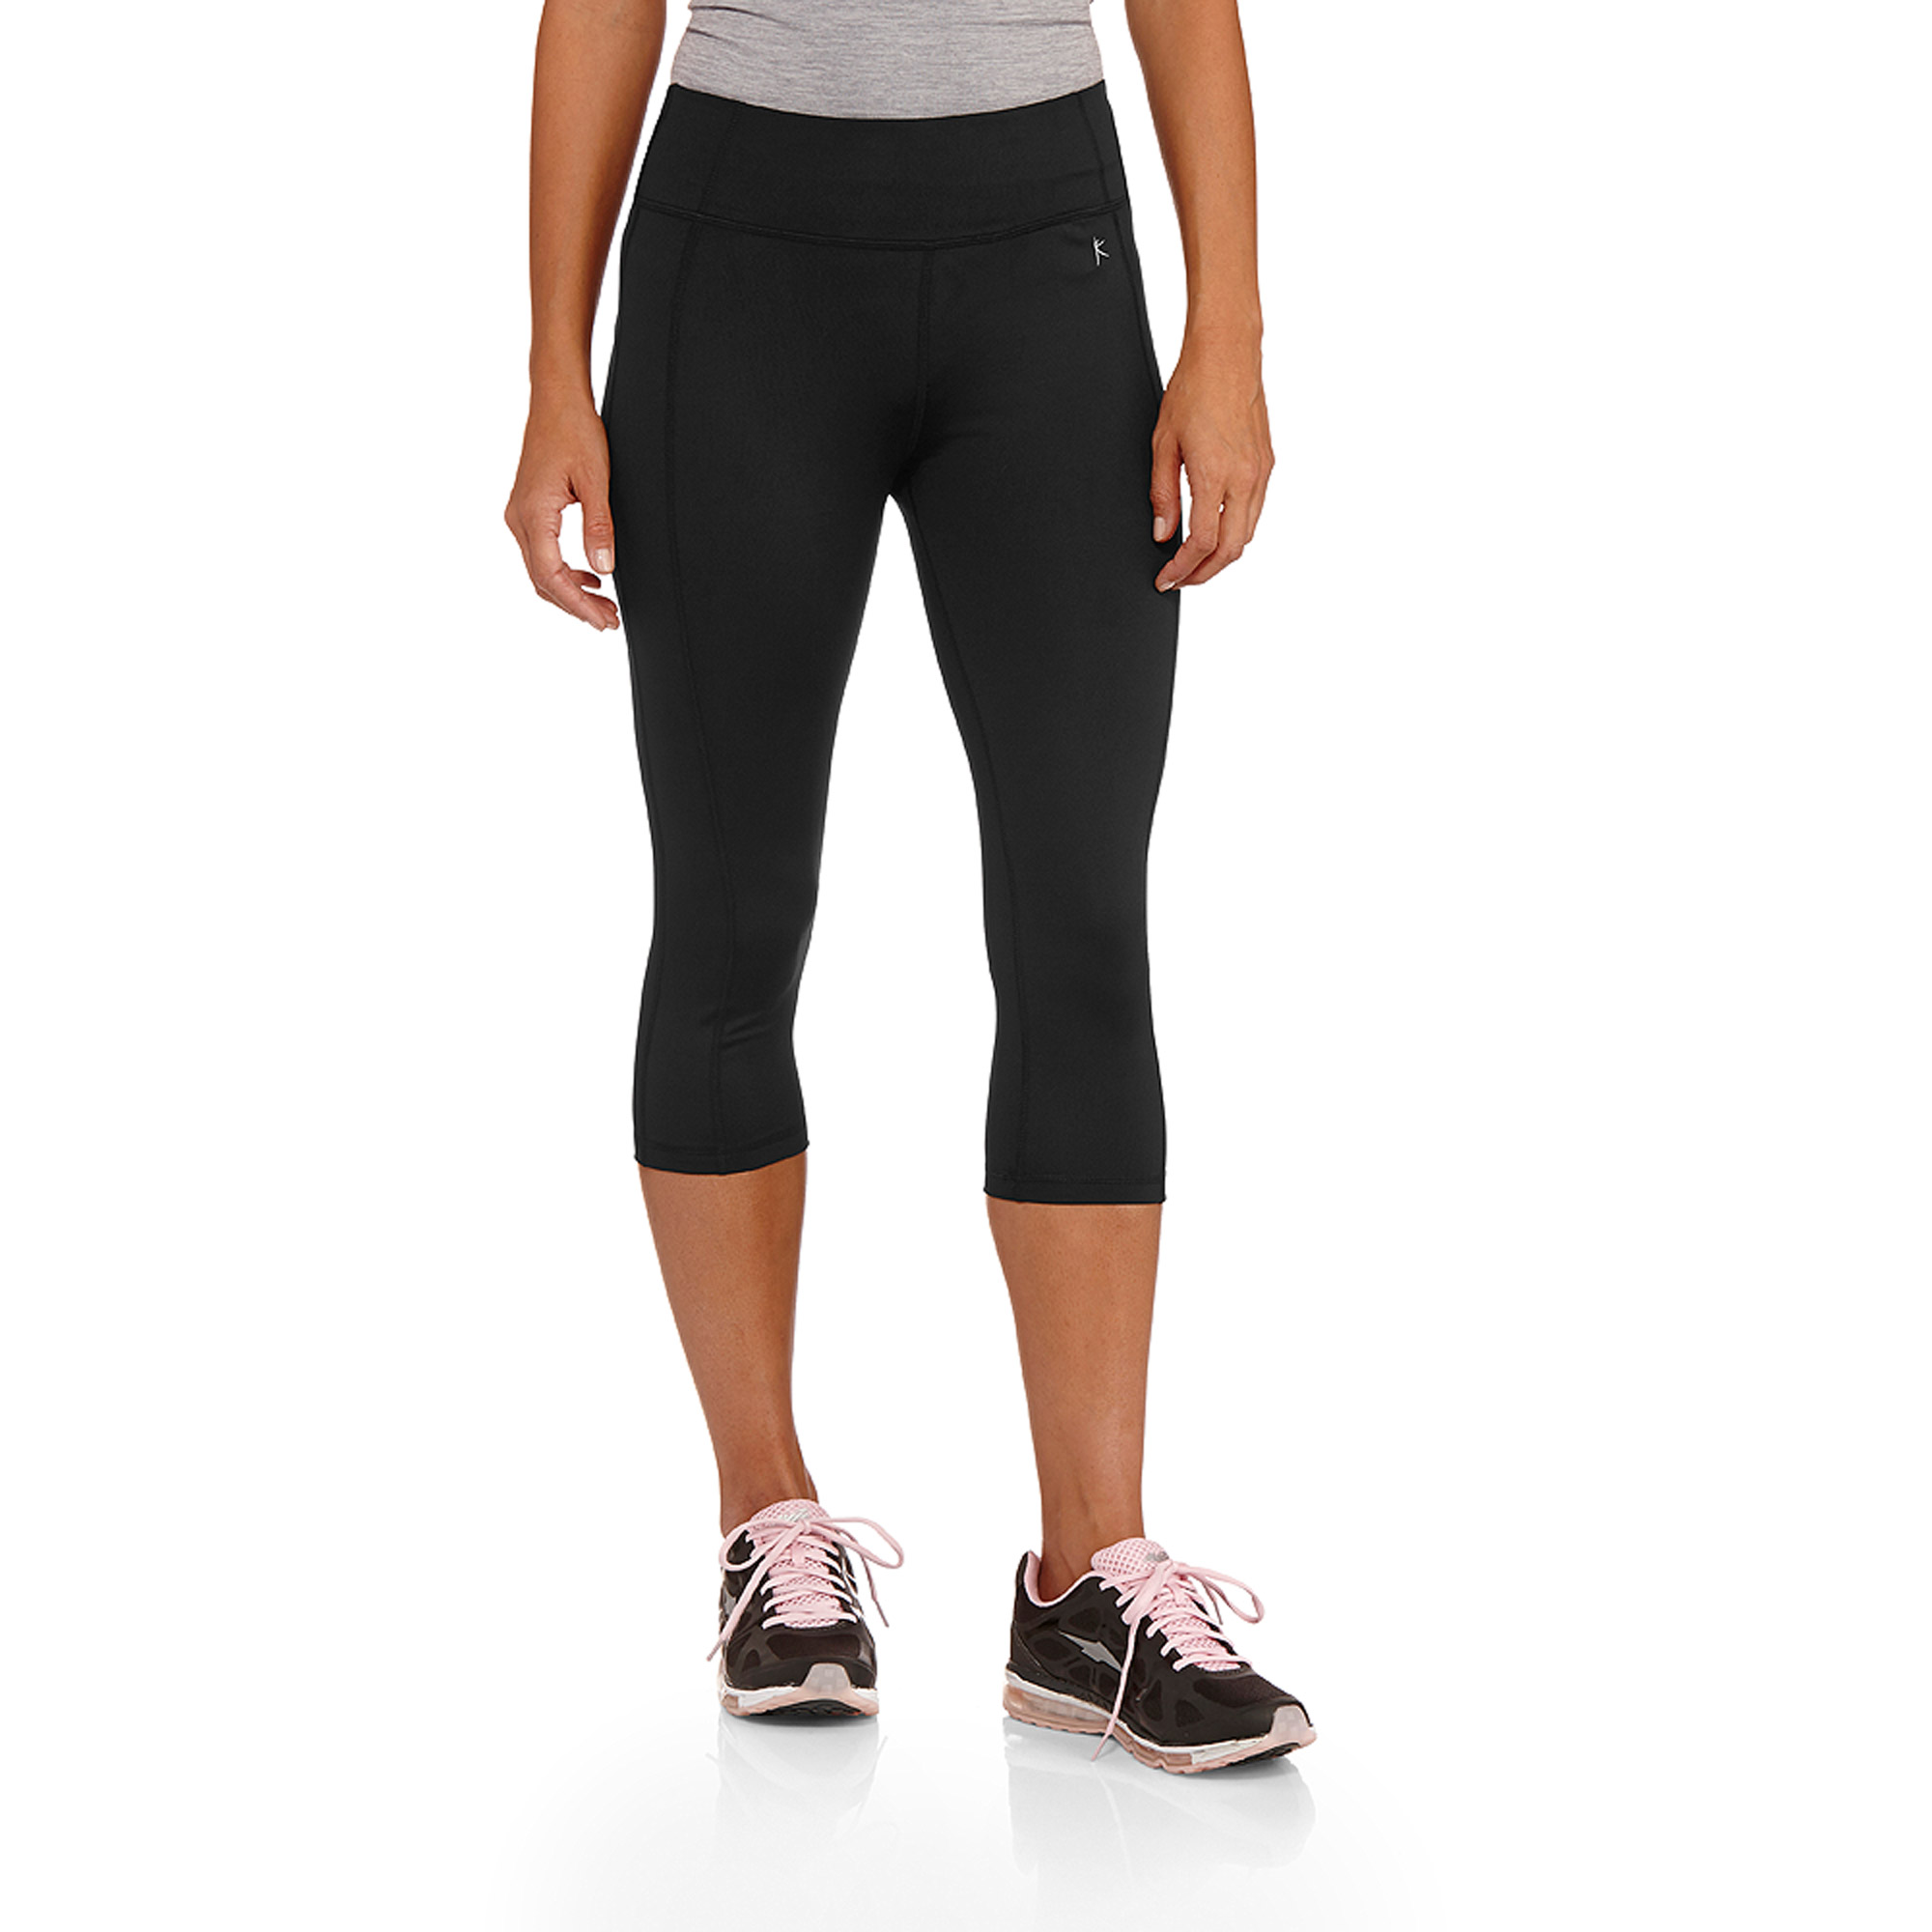 Women's Plus-Size Performance Capri Legging